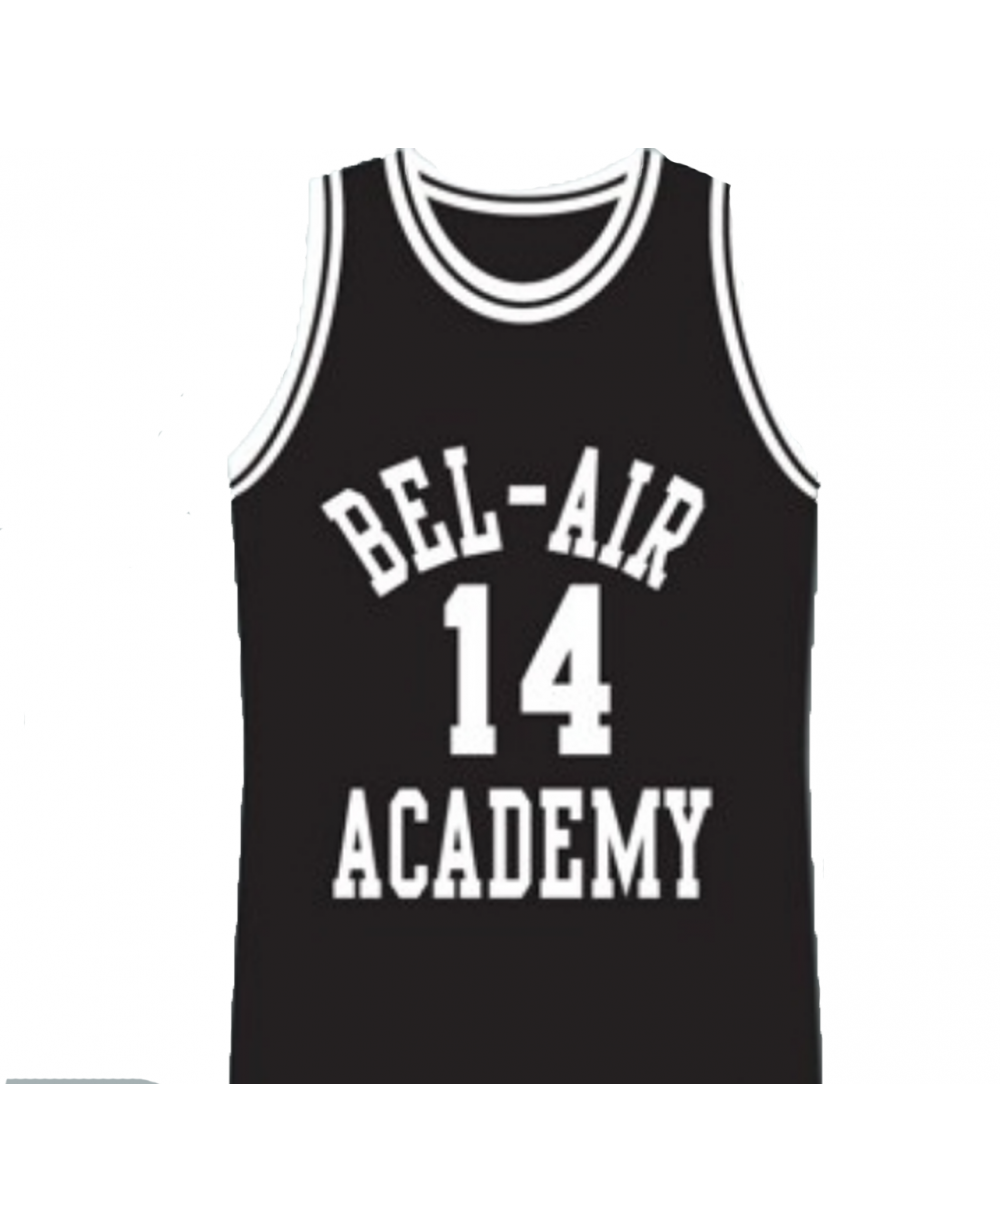 factory authentic de619 df379 Will Smith #14 Bel Air Black Basketball Jersey